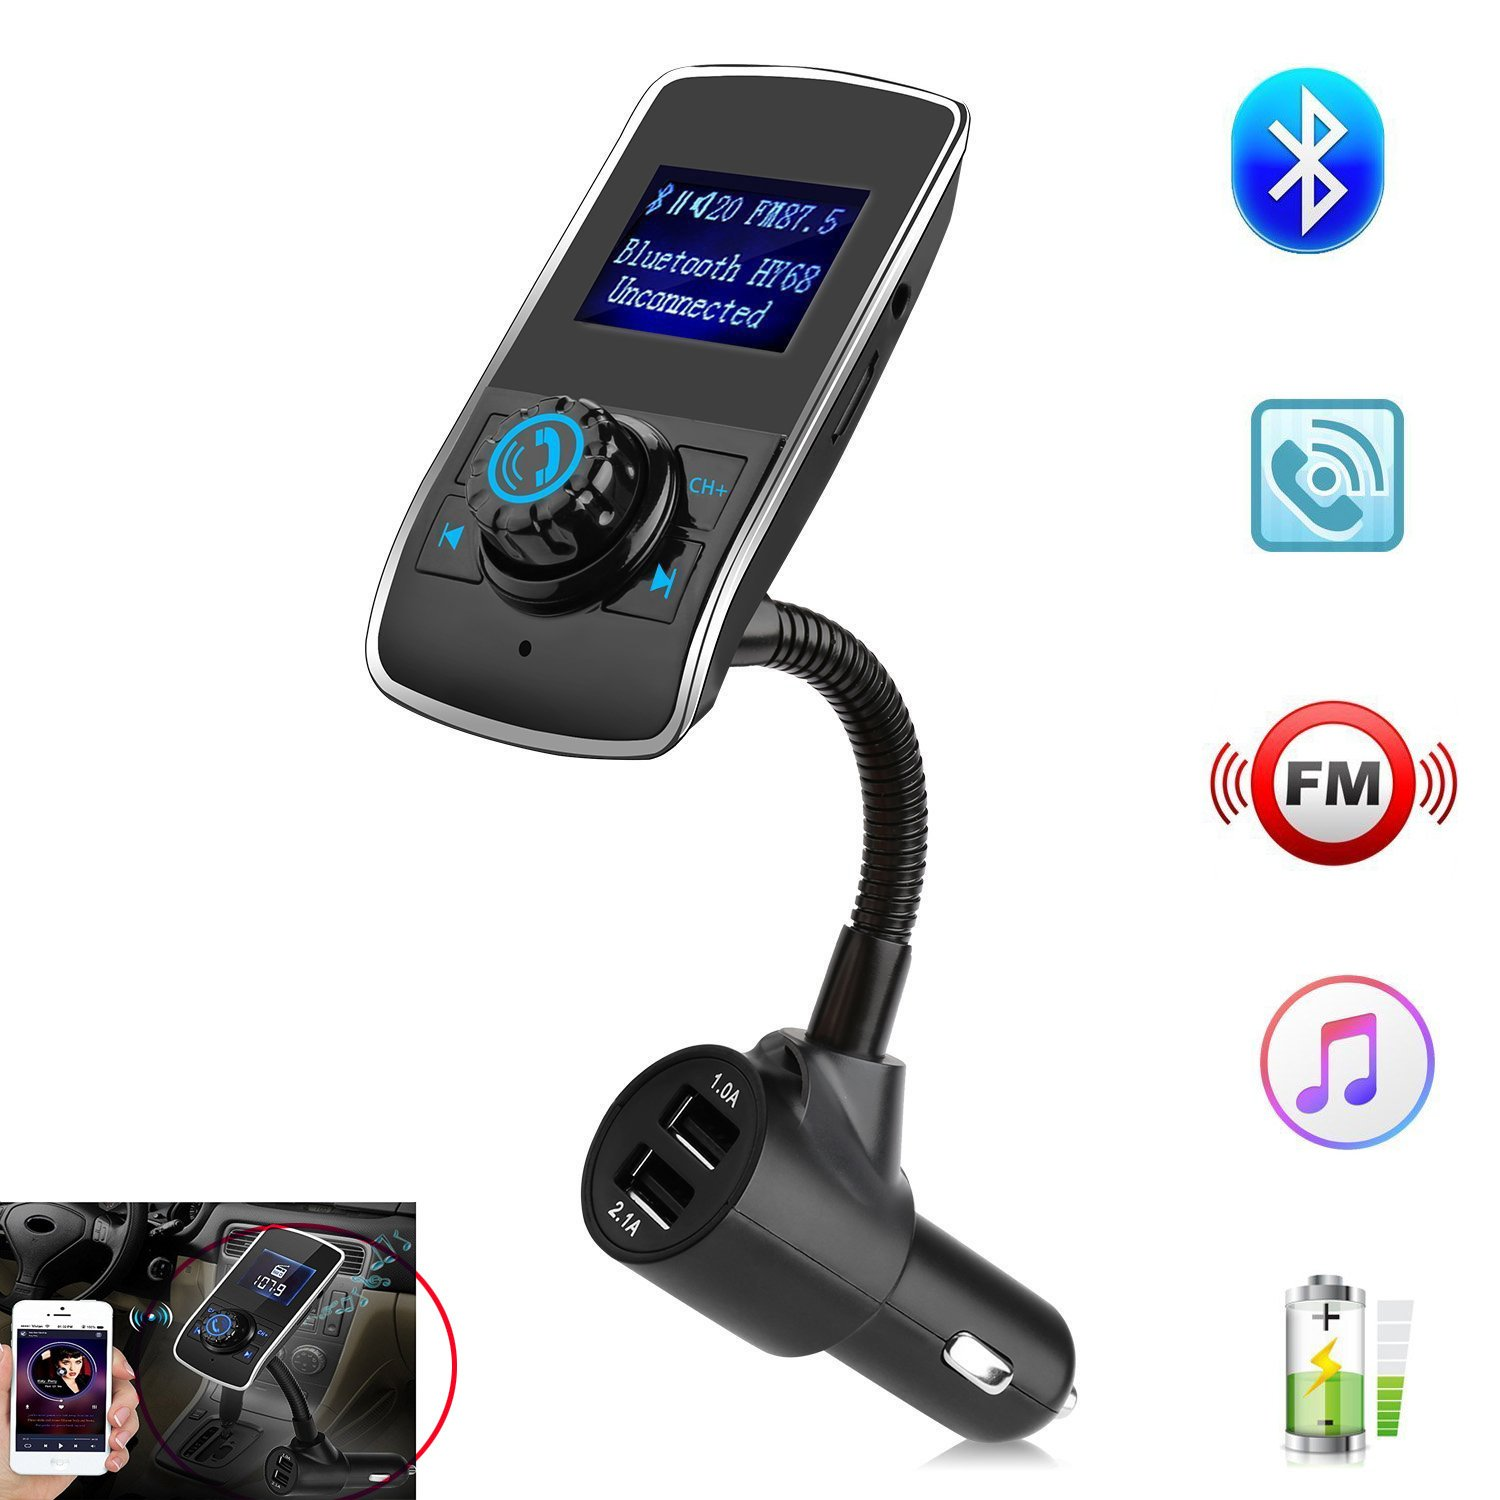 Bluetooth Car adapter,FM Transmitter&Music car charger,3.1A Dual USB Port Charger compatible for iphone,Samsung,XIAOMI,HUAWEI etc